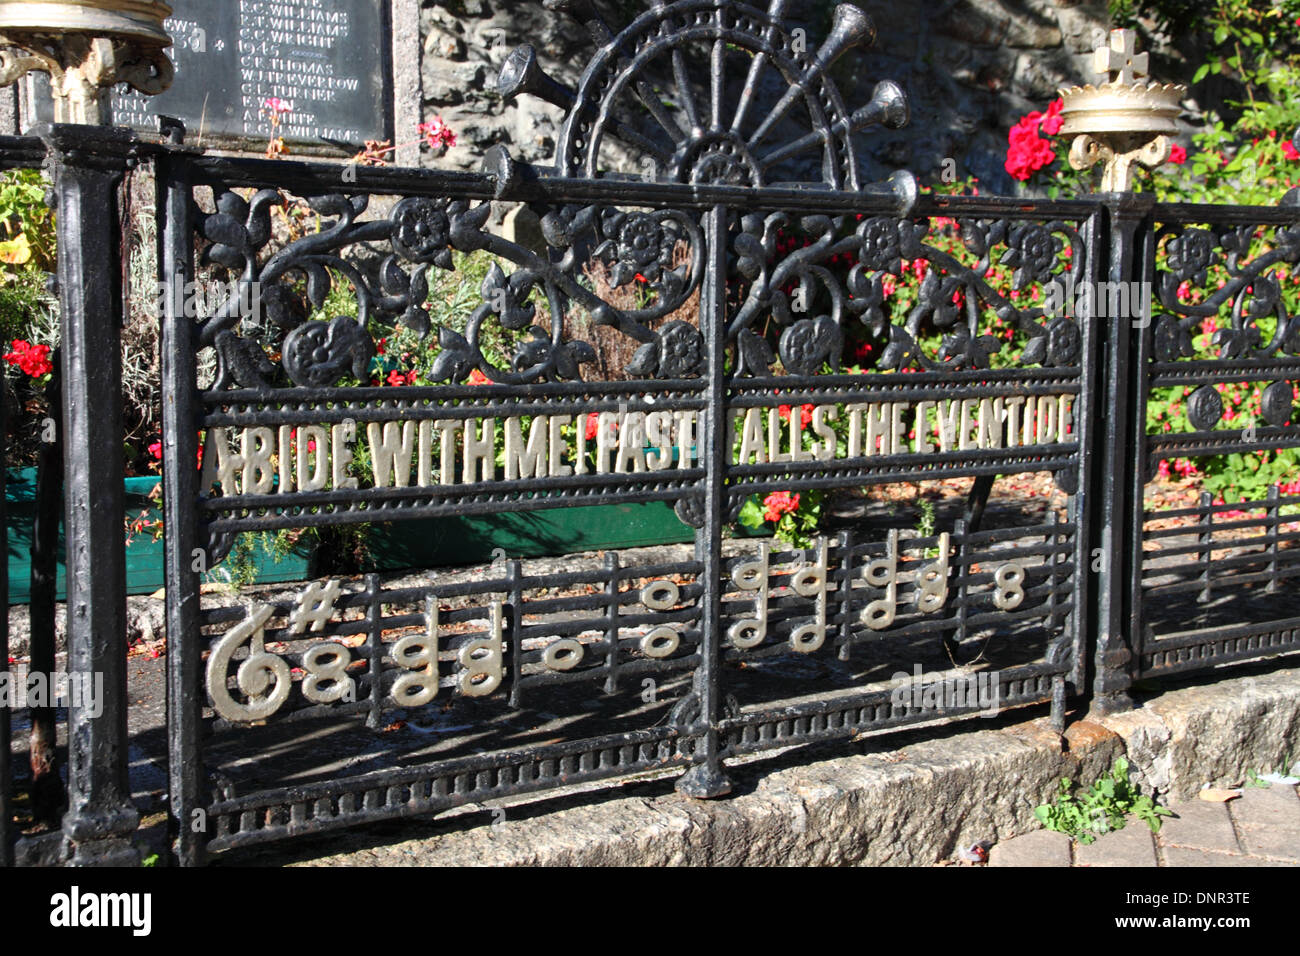 A war memorial with wrought iron gates inscribed 'Abide with Me Fast falls the Eventide'. - Stock Image